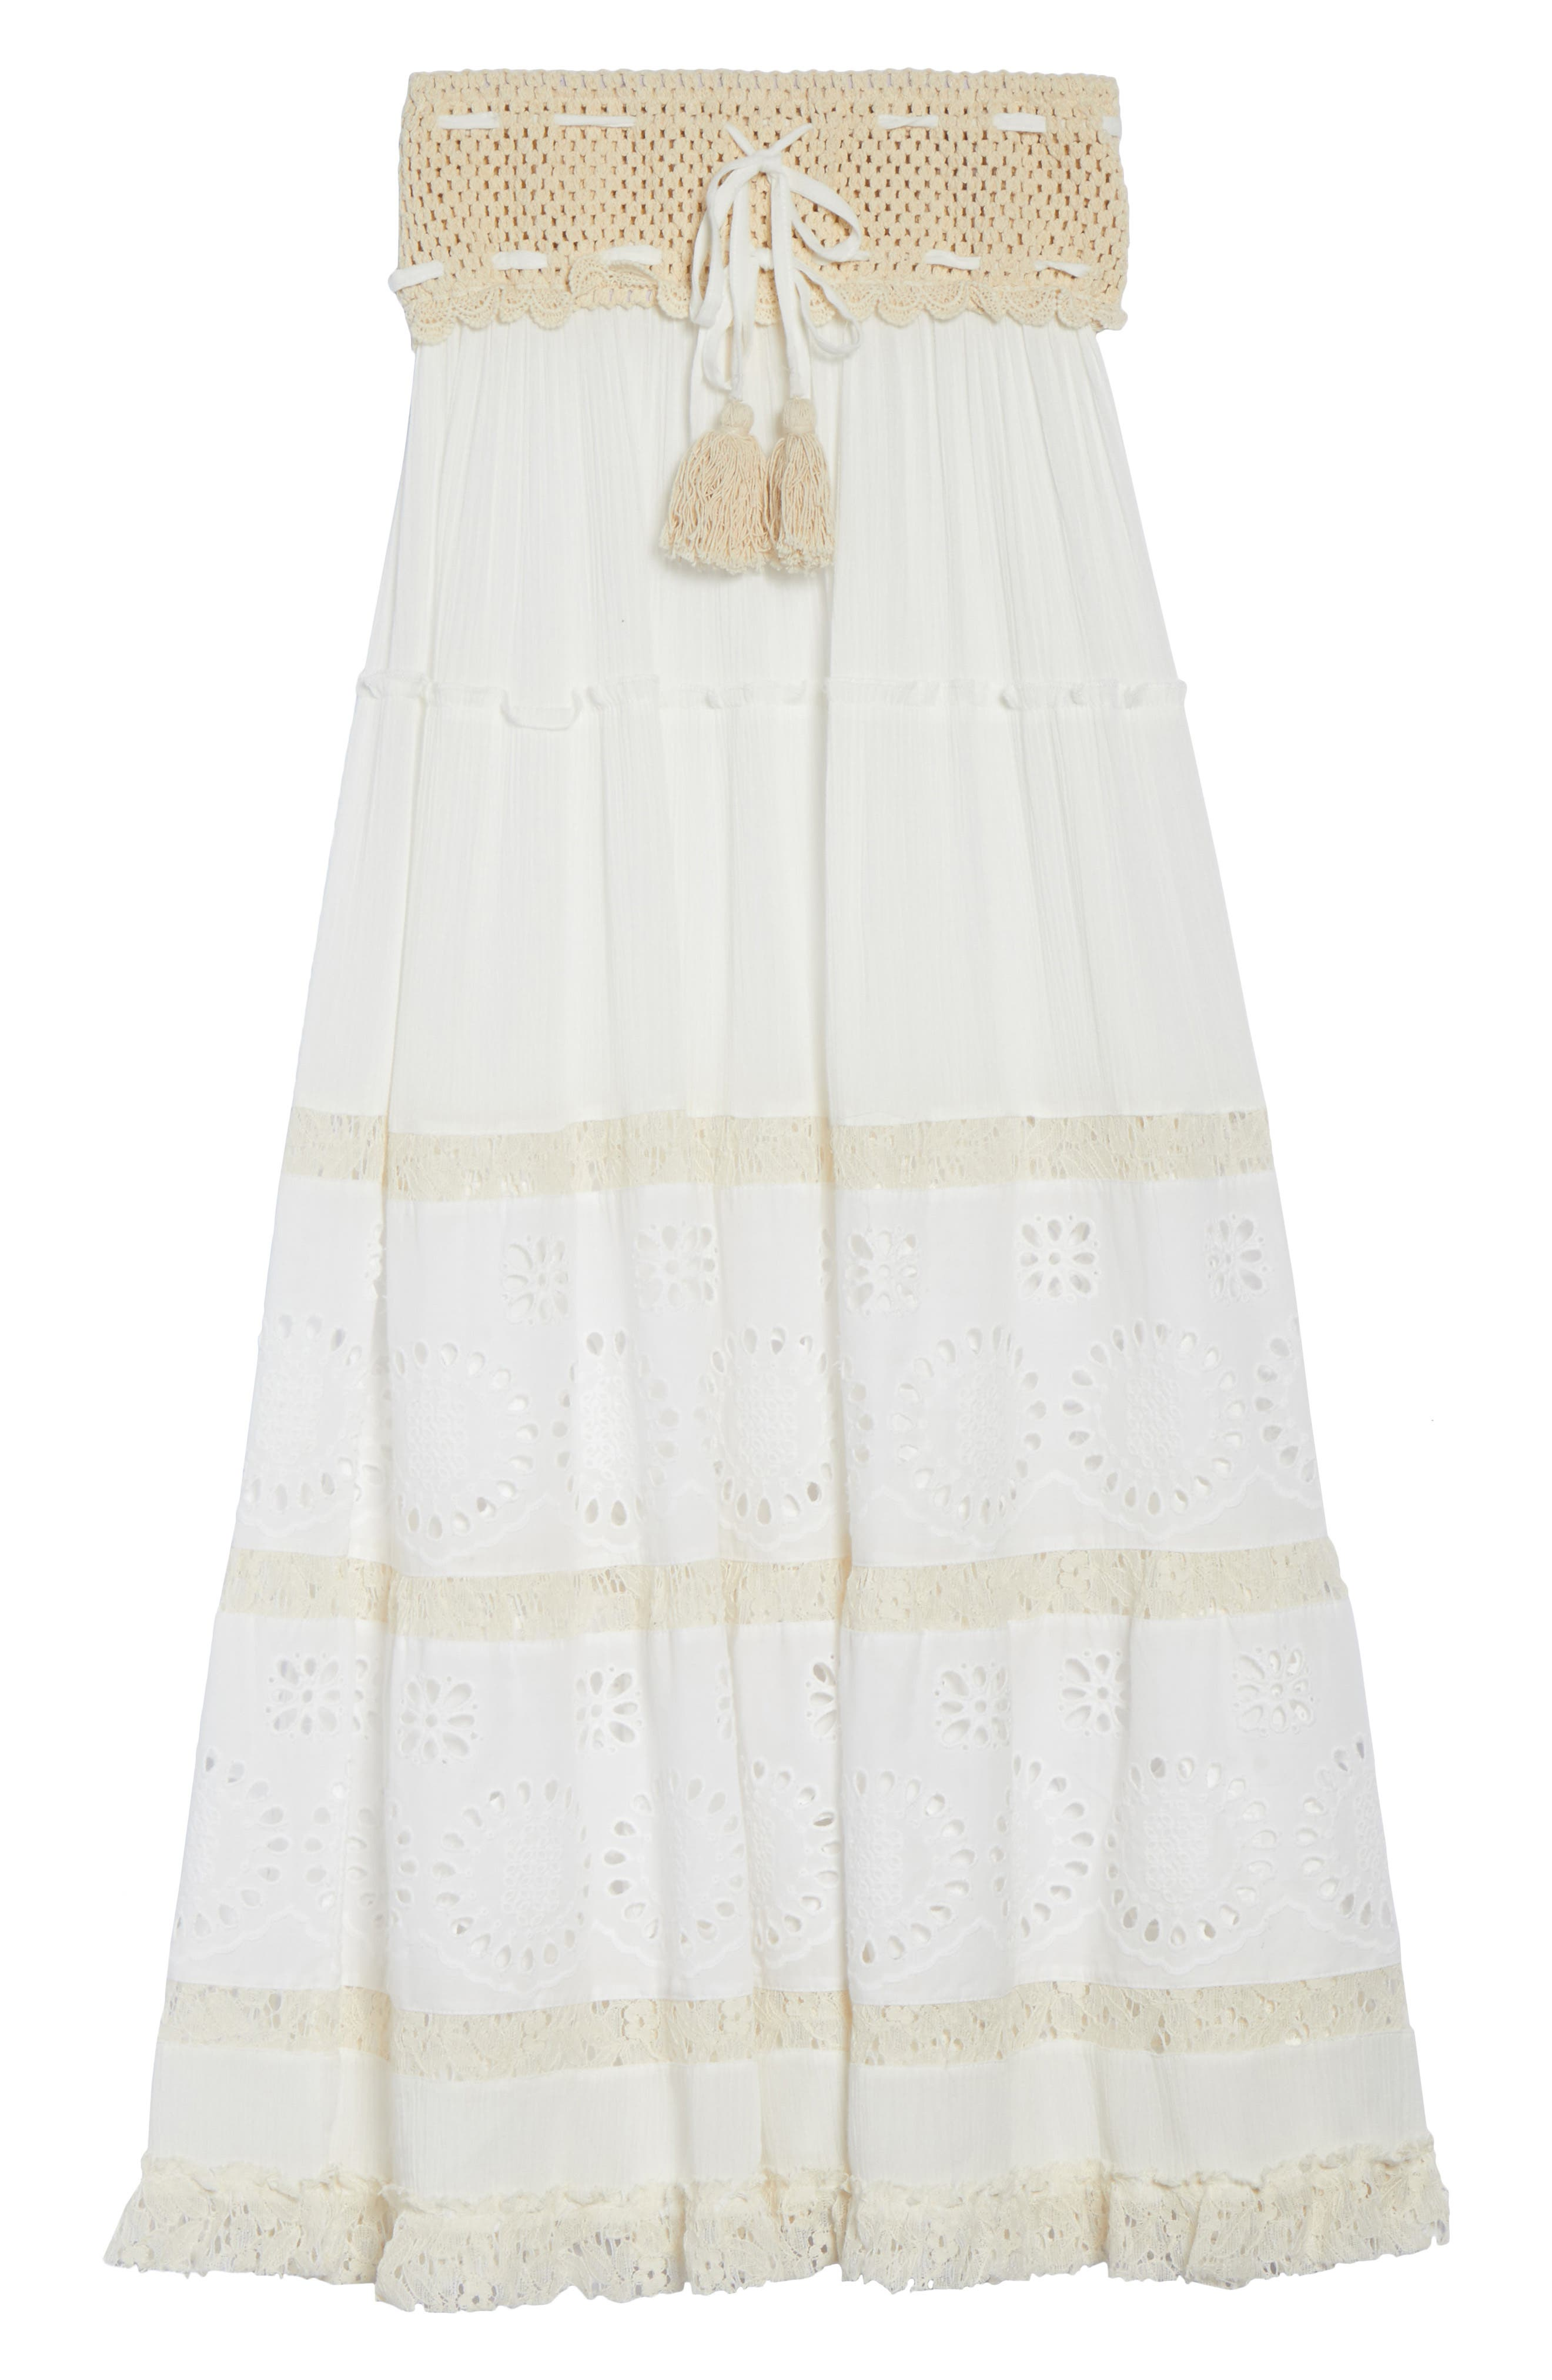 Cover-Up Maxi Skirt,                             Alternate thumbnail 6, color,                             900